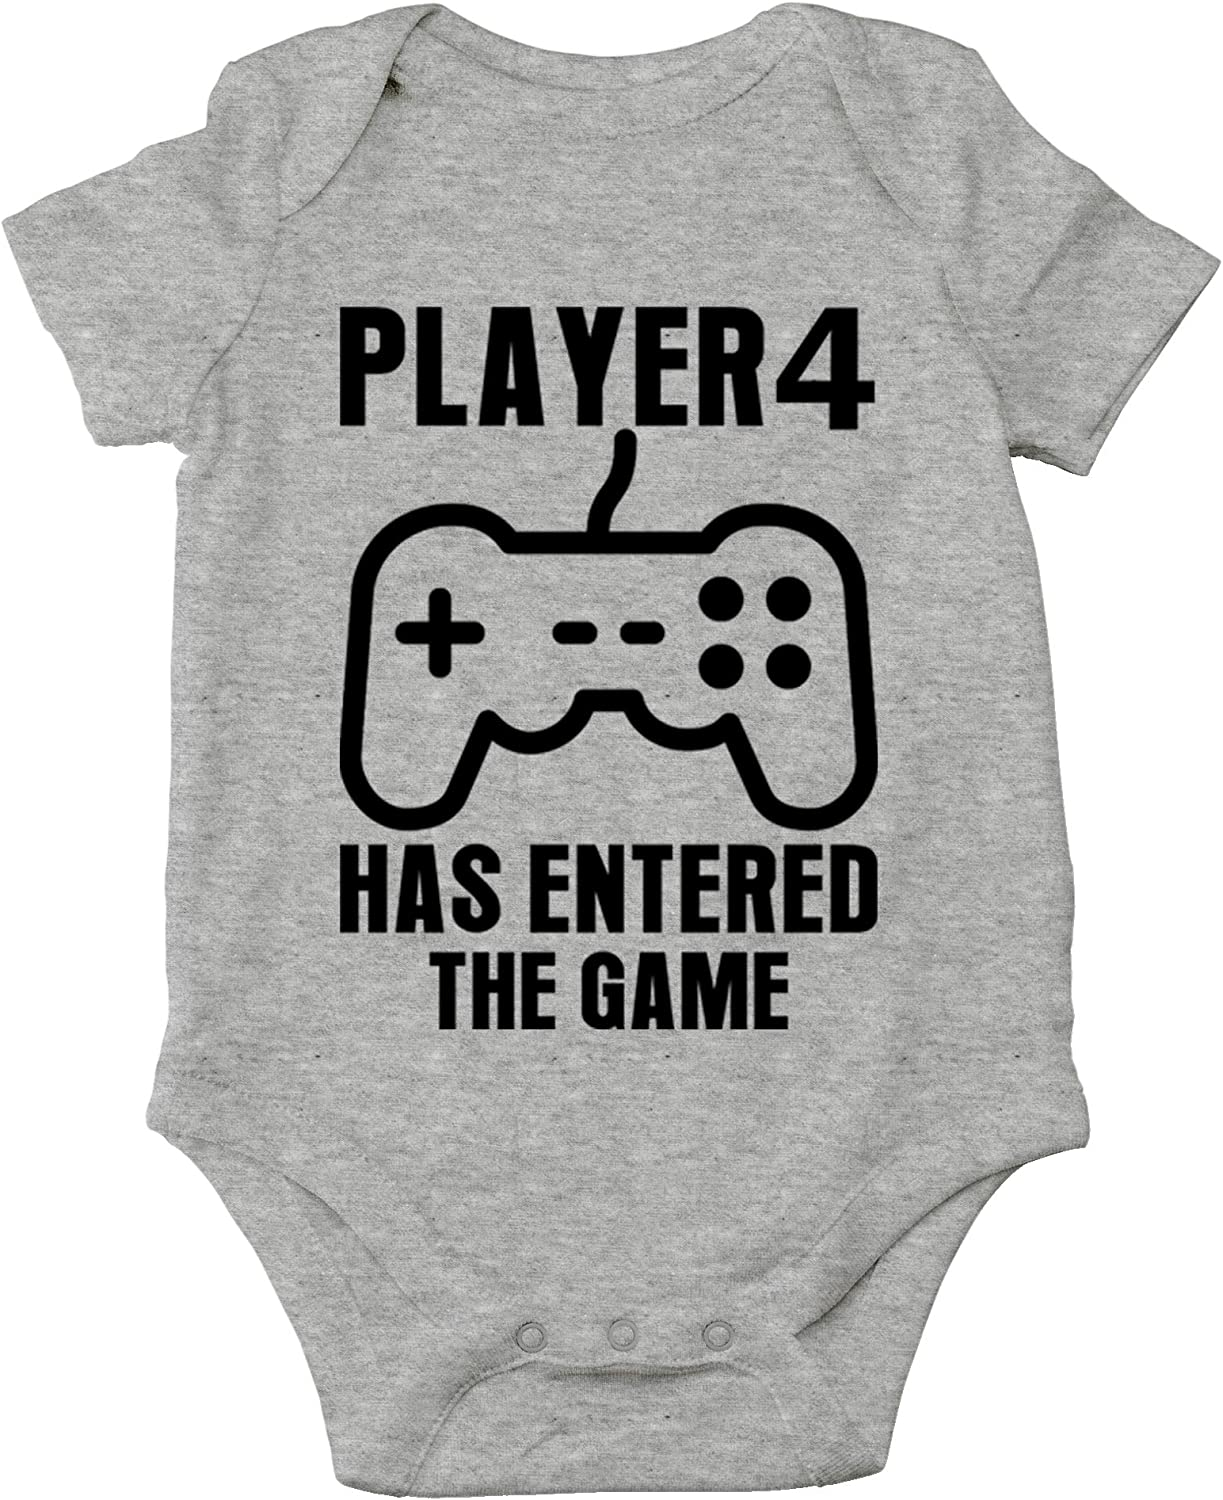 CBTwear Player 4 Has Entered The Game - New Sibbling Announcement - Cute Infant One-Piece Baby Bodysuit